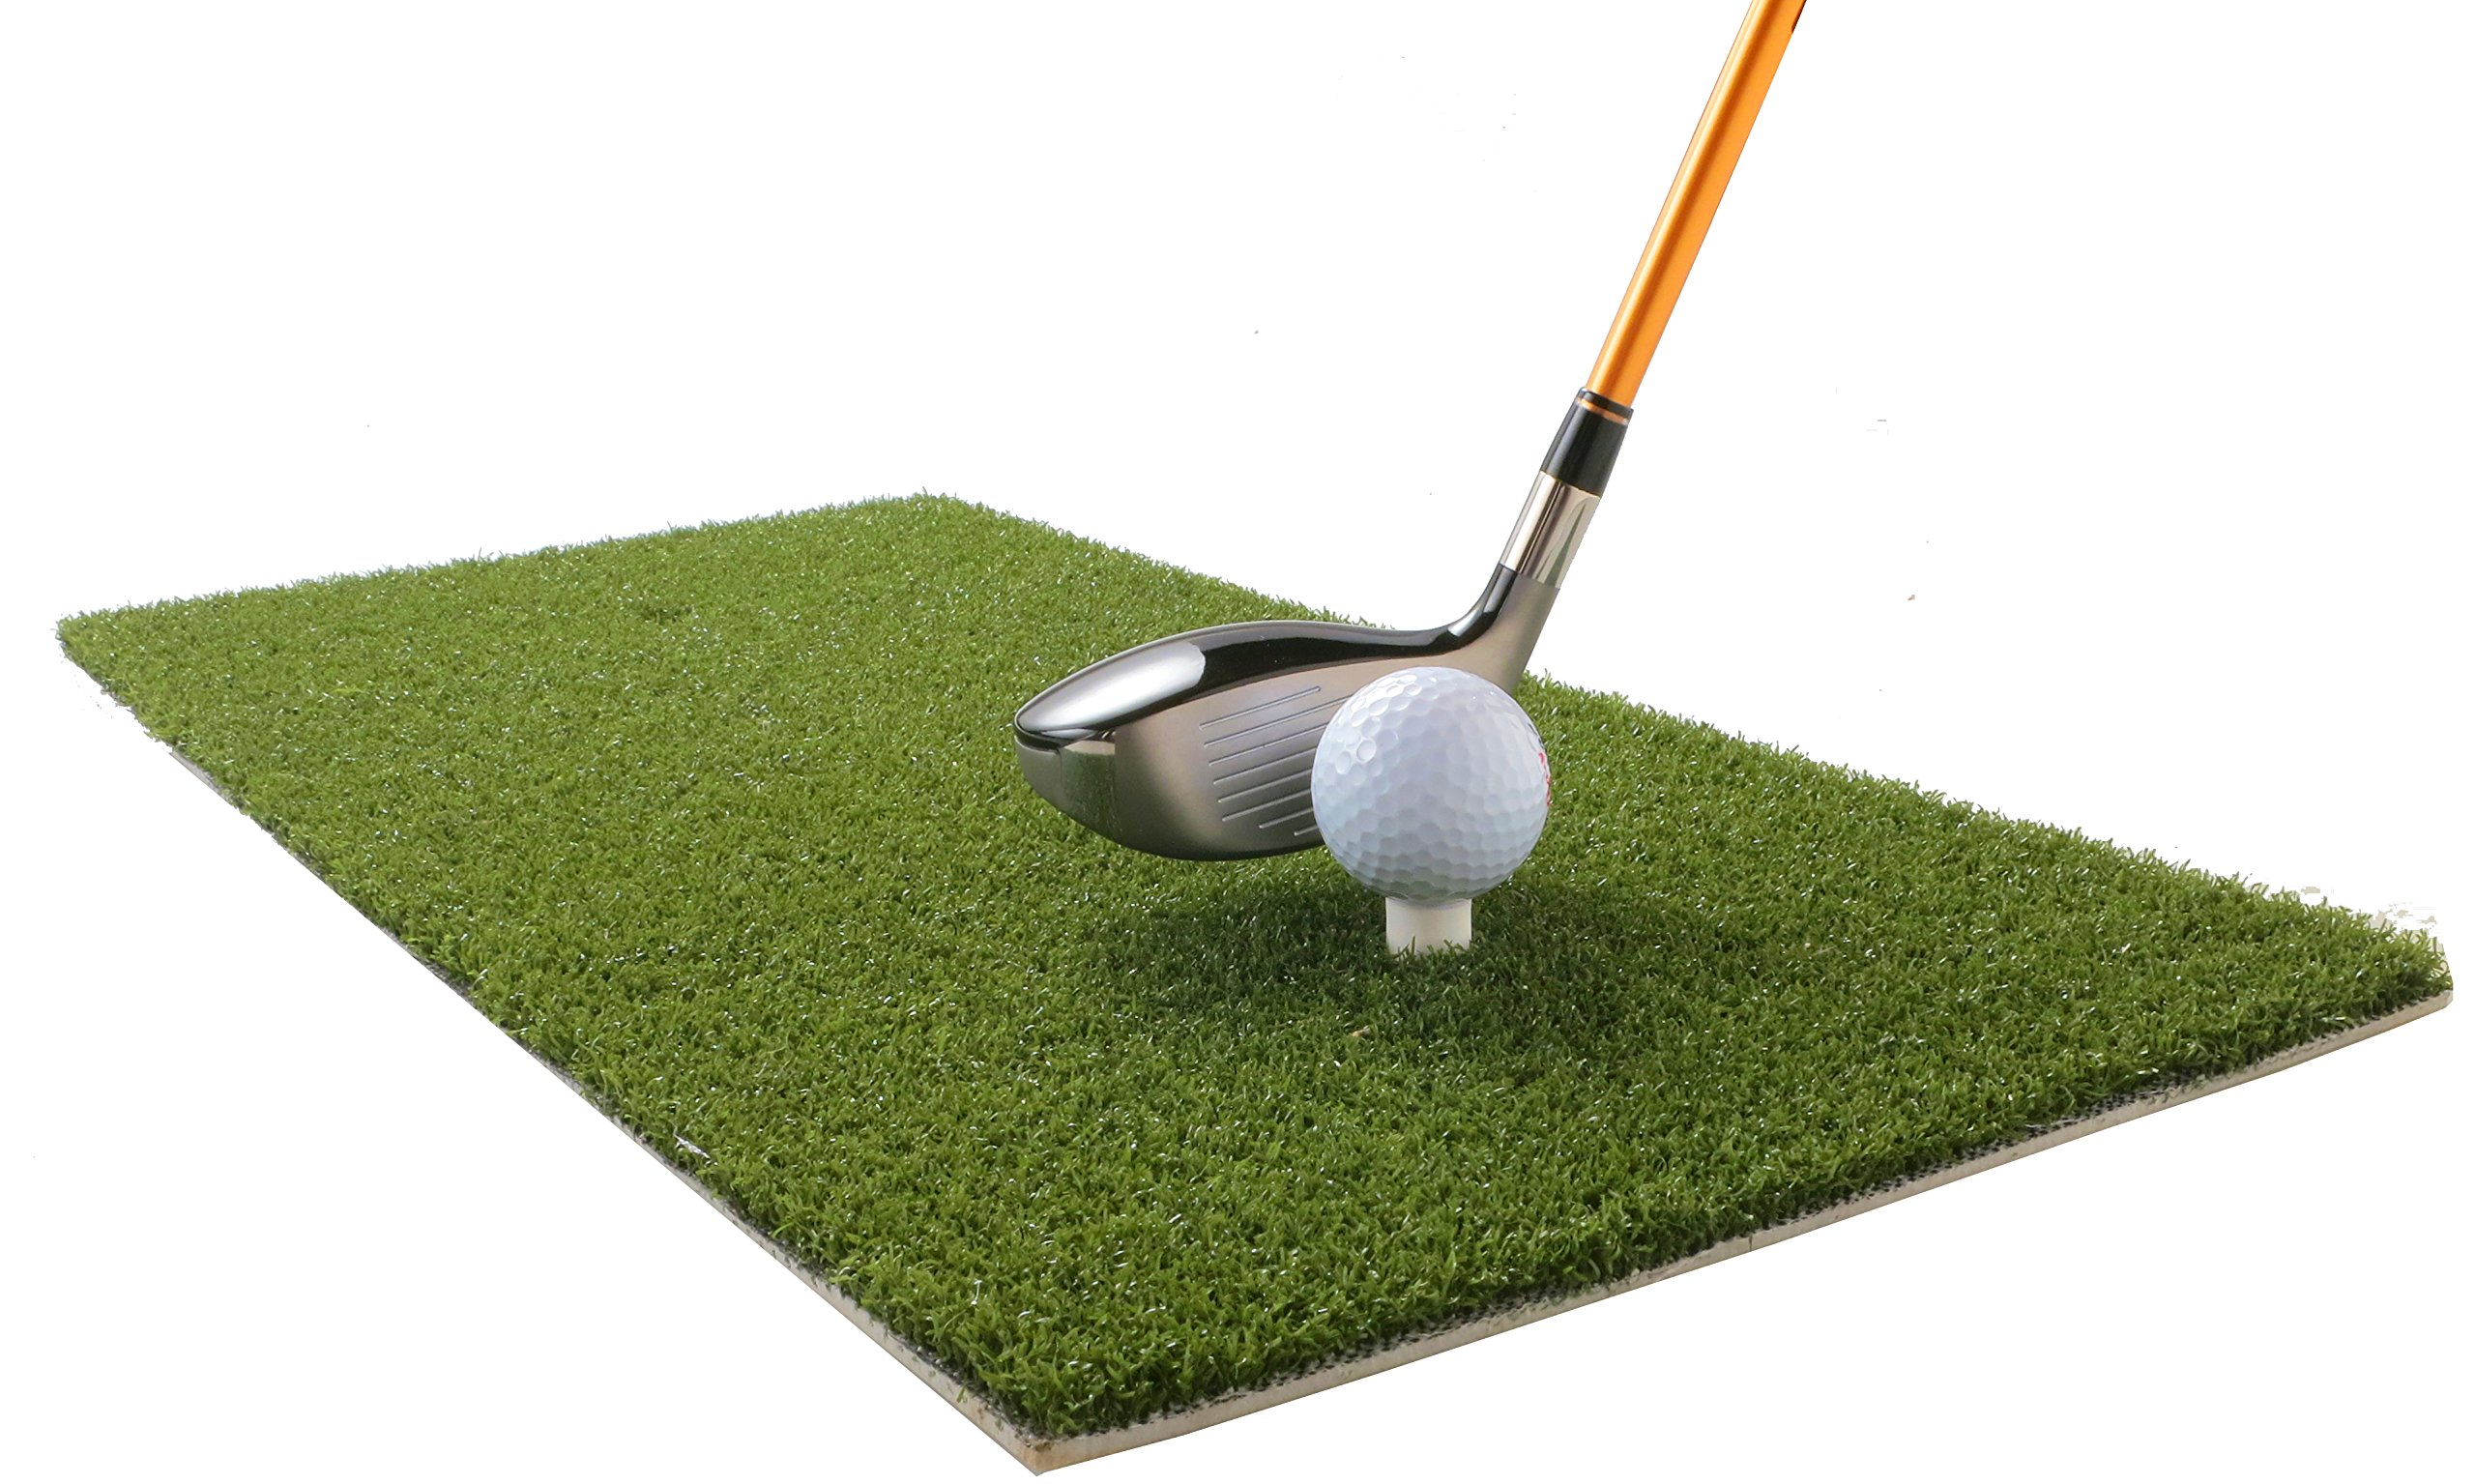 Putt-A-Bout Chipping and Drive Mat, 1 x 2-Feet by Putt-A-Bout (Image #2)